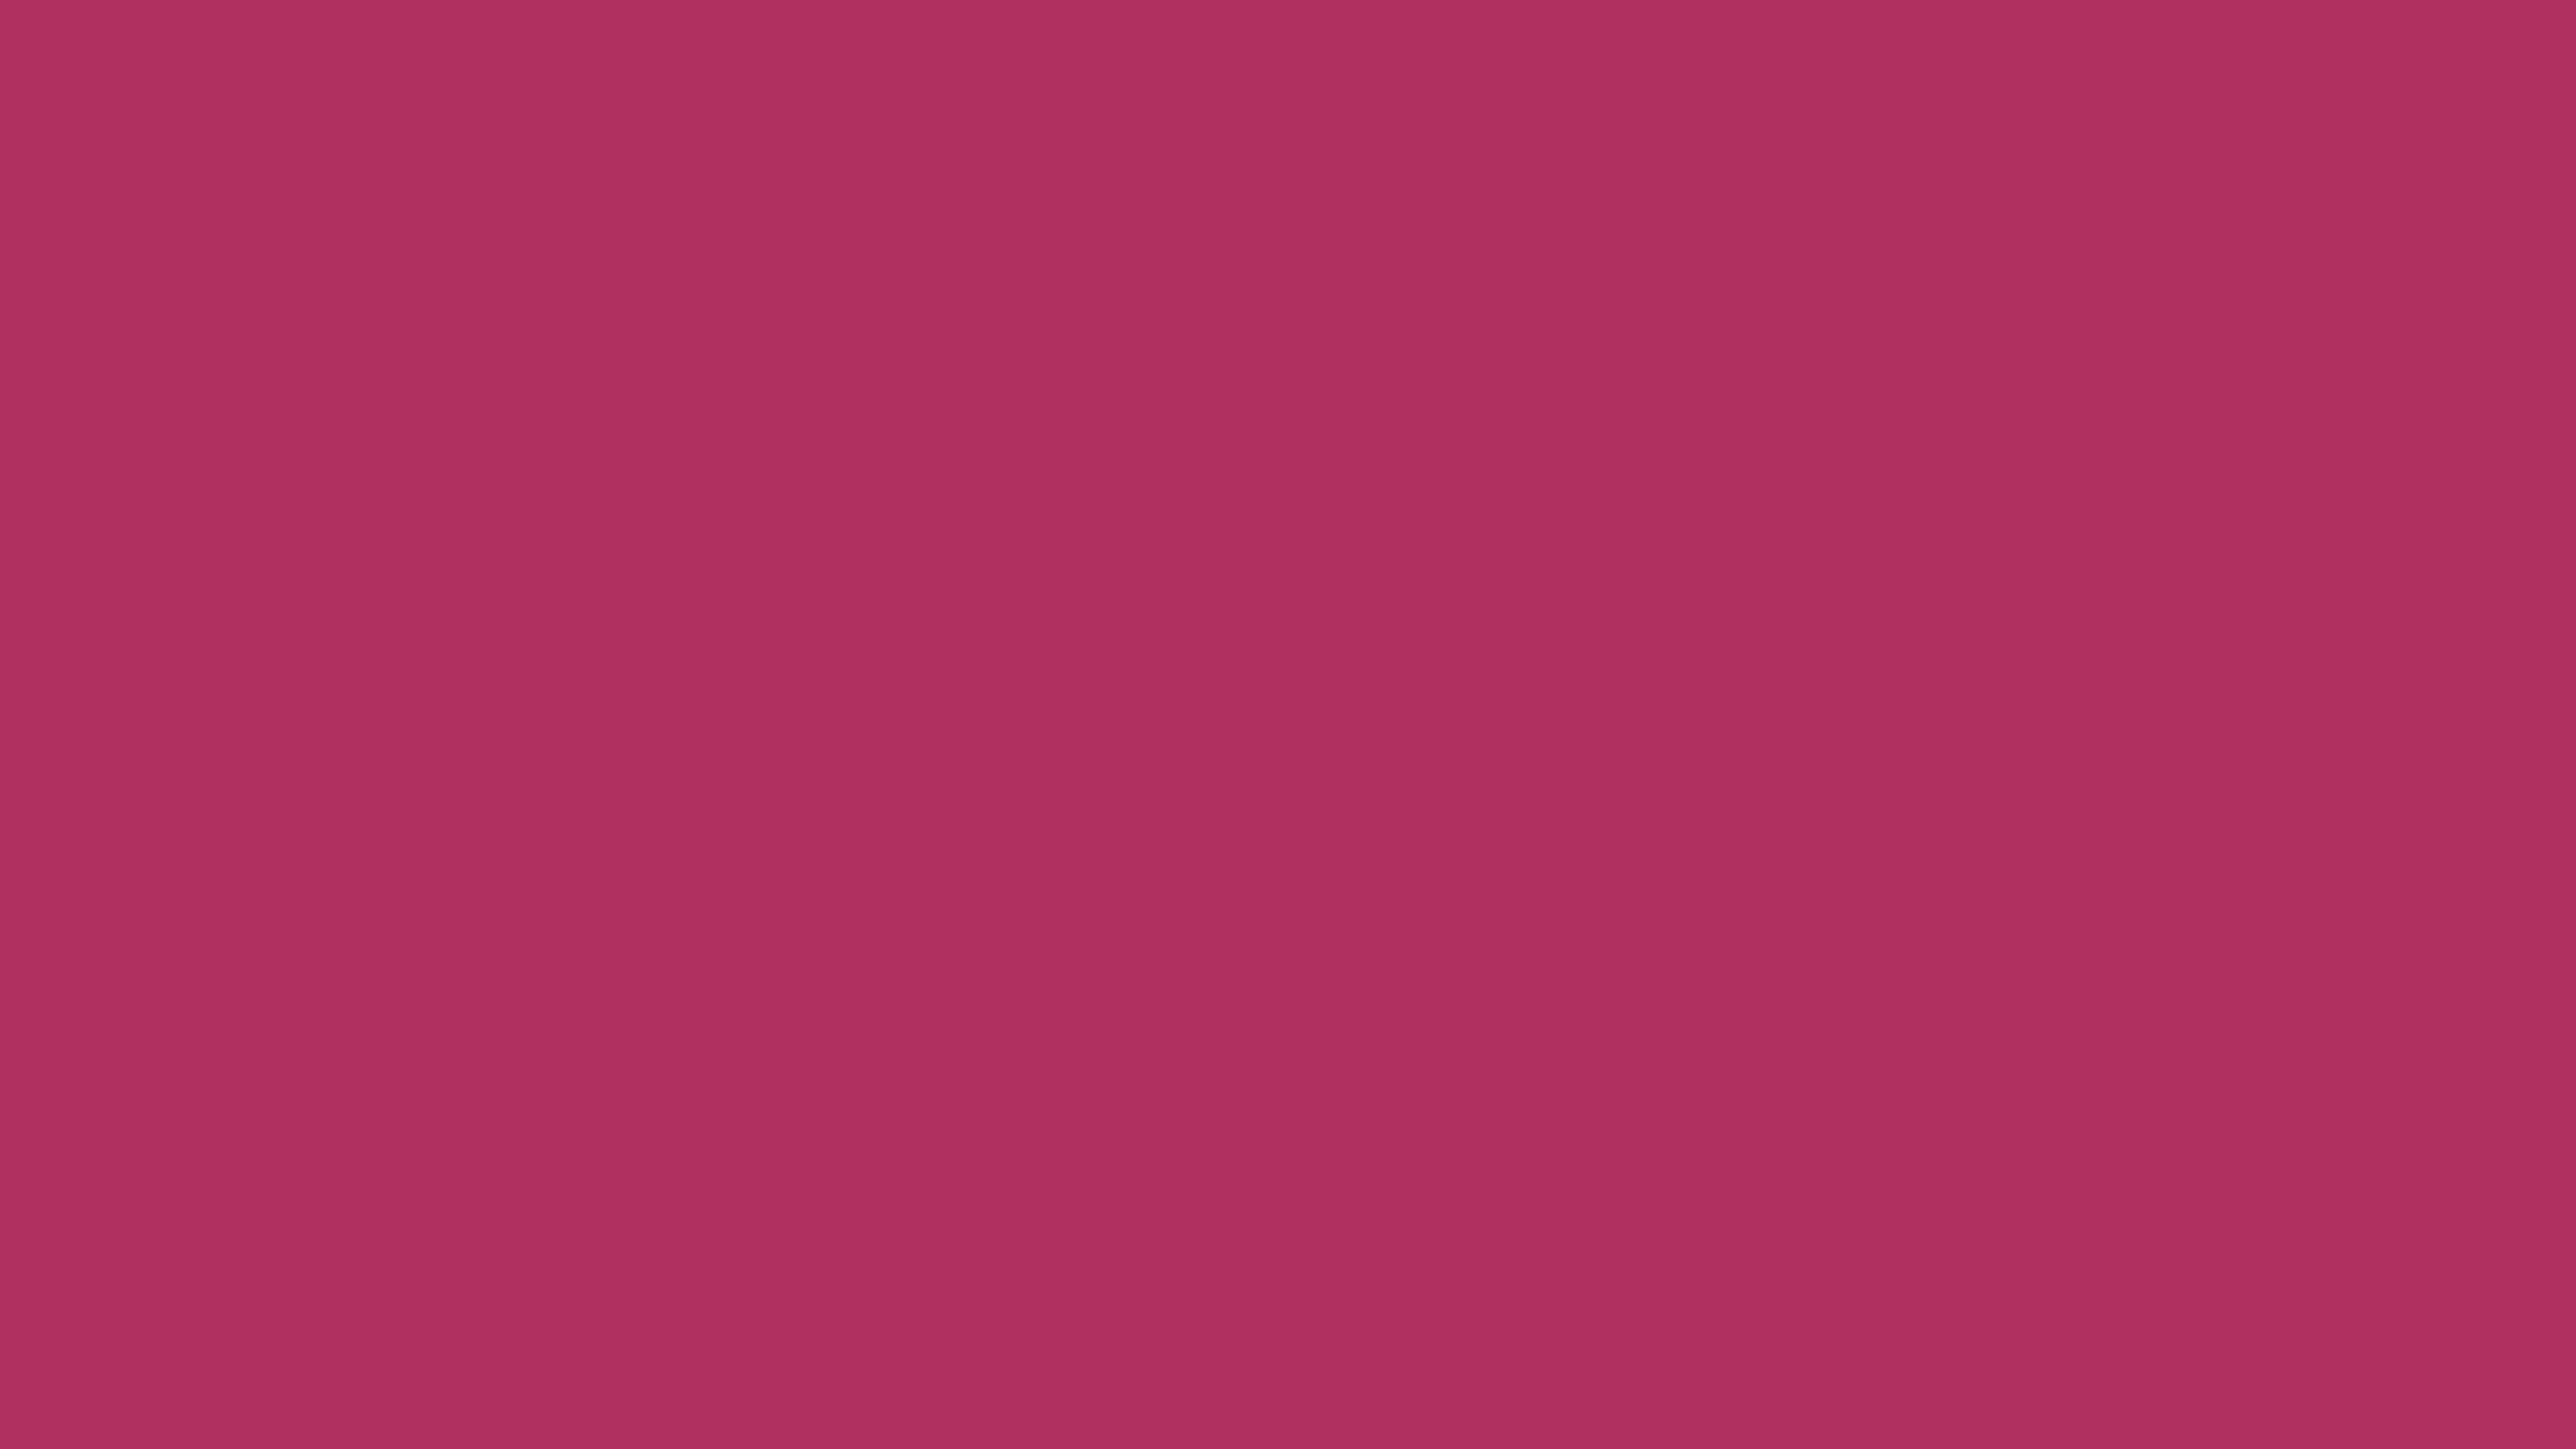 5120x2880 Rich Maroon Solid Color Background